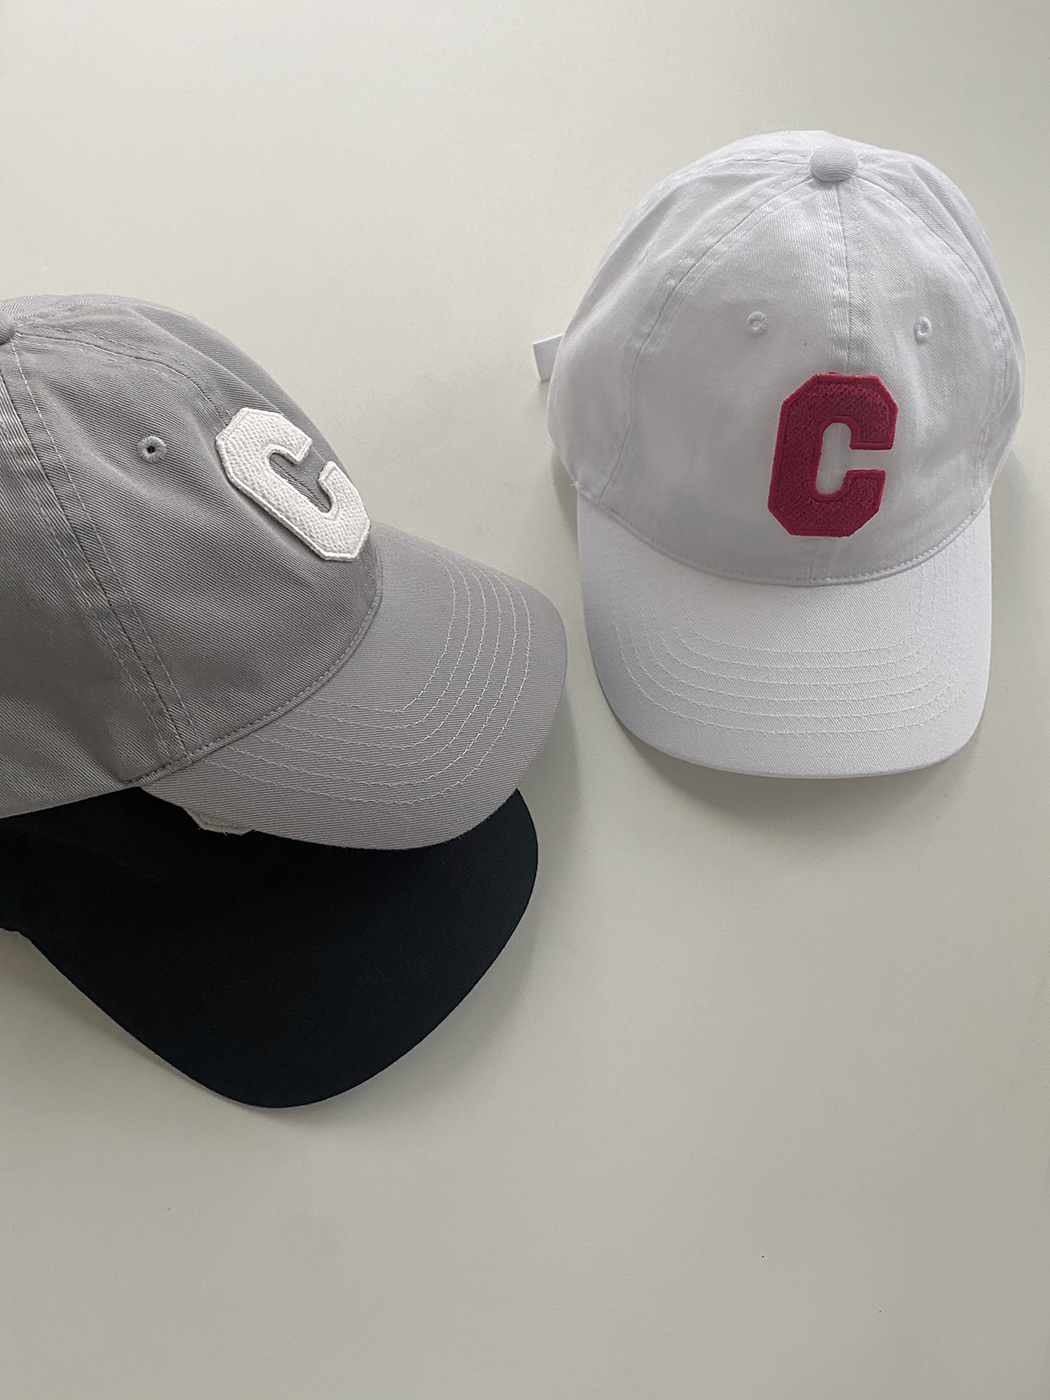 'C' embroidered ball cap